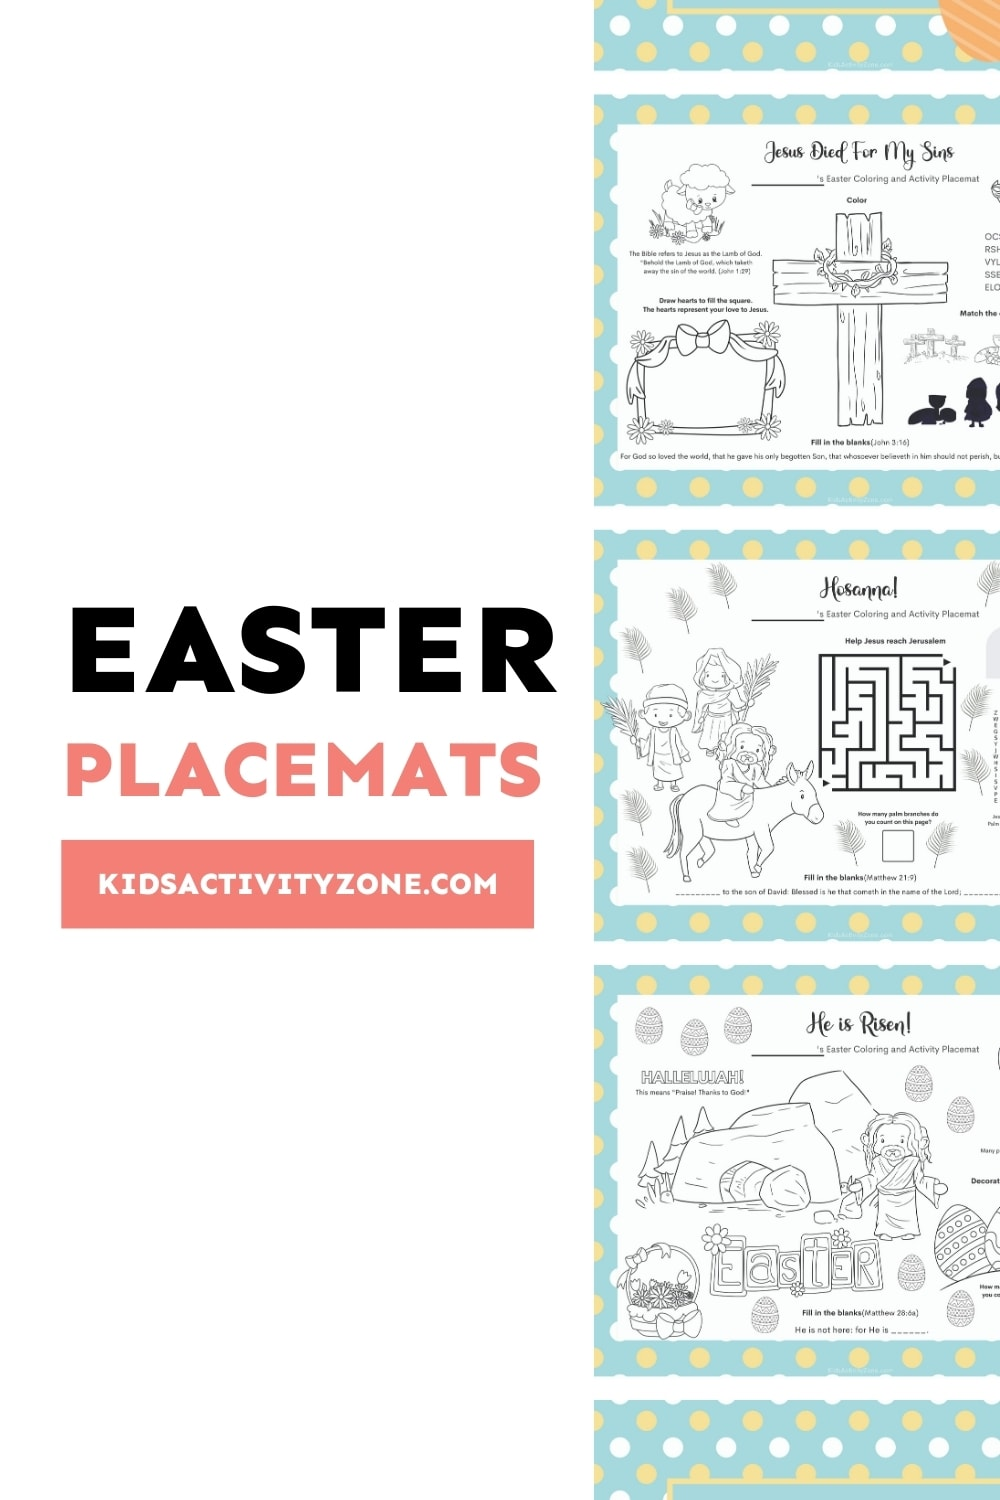 Free Printable Easter Placemats with Coloring and Activities are perfect for your tablescape! They keep little and big hands and minds busy during the Easter meal. Simply download, print and place at your table with a pencil and crayons.